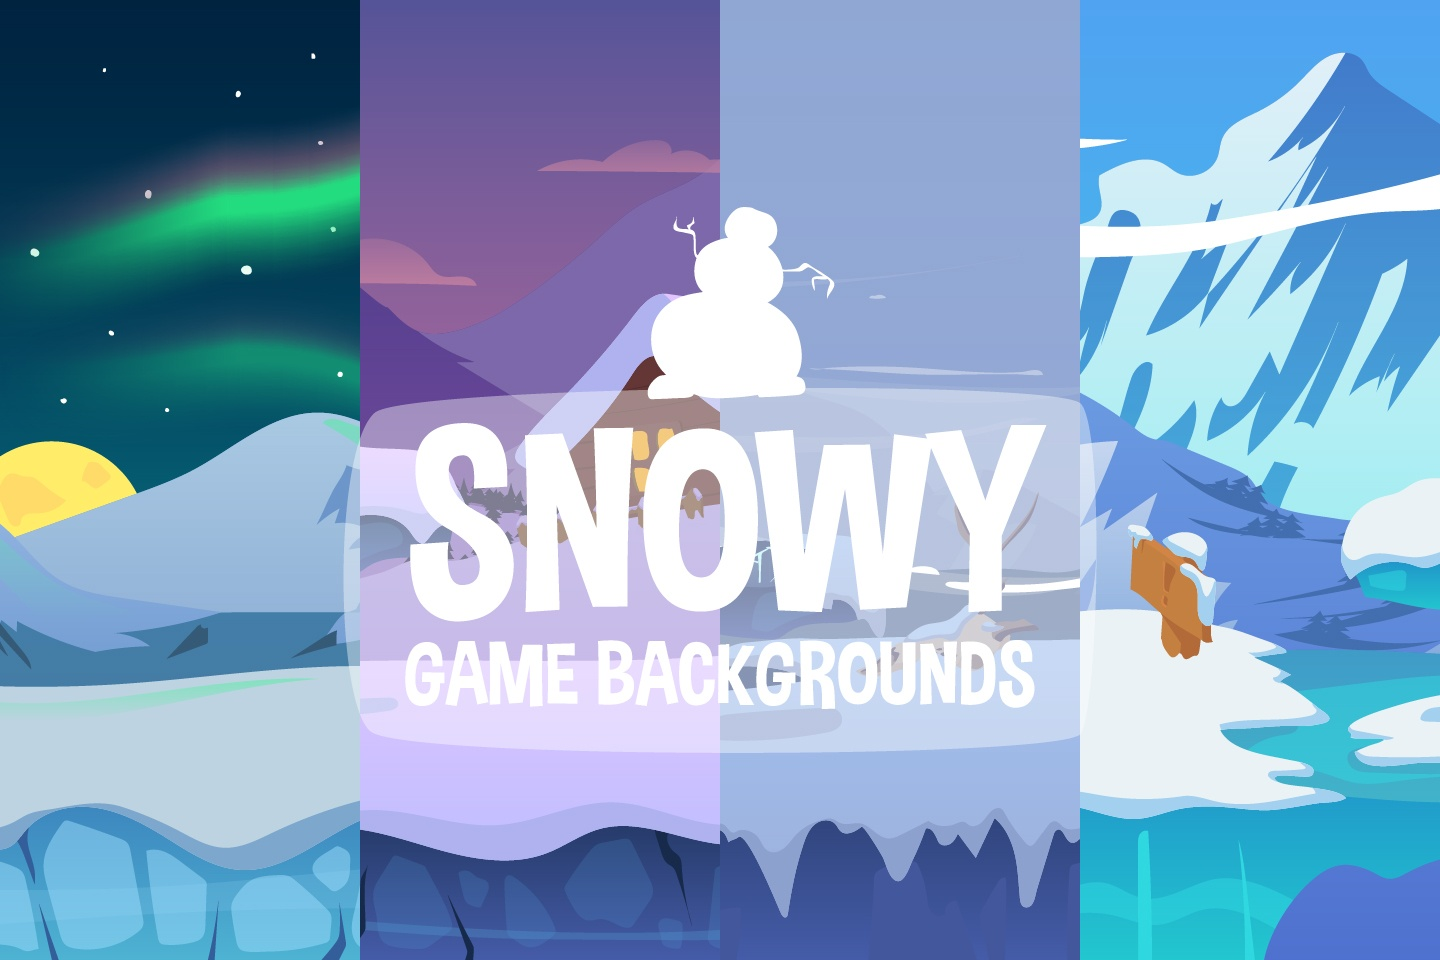 Snowy 2D Game Backgrounds